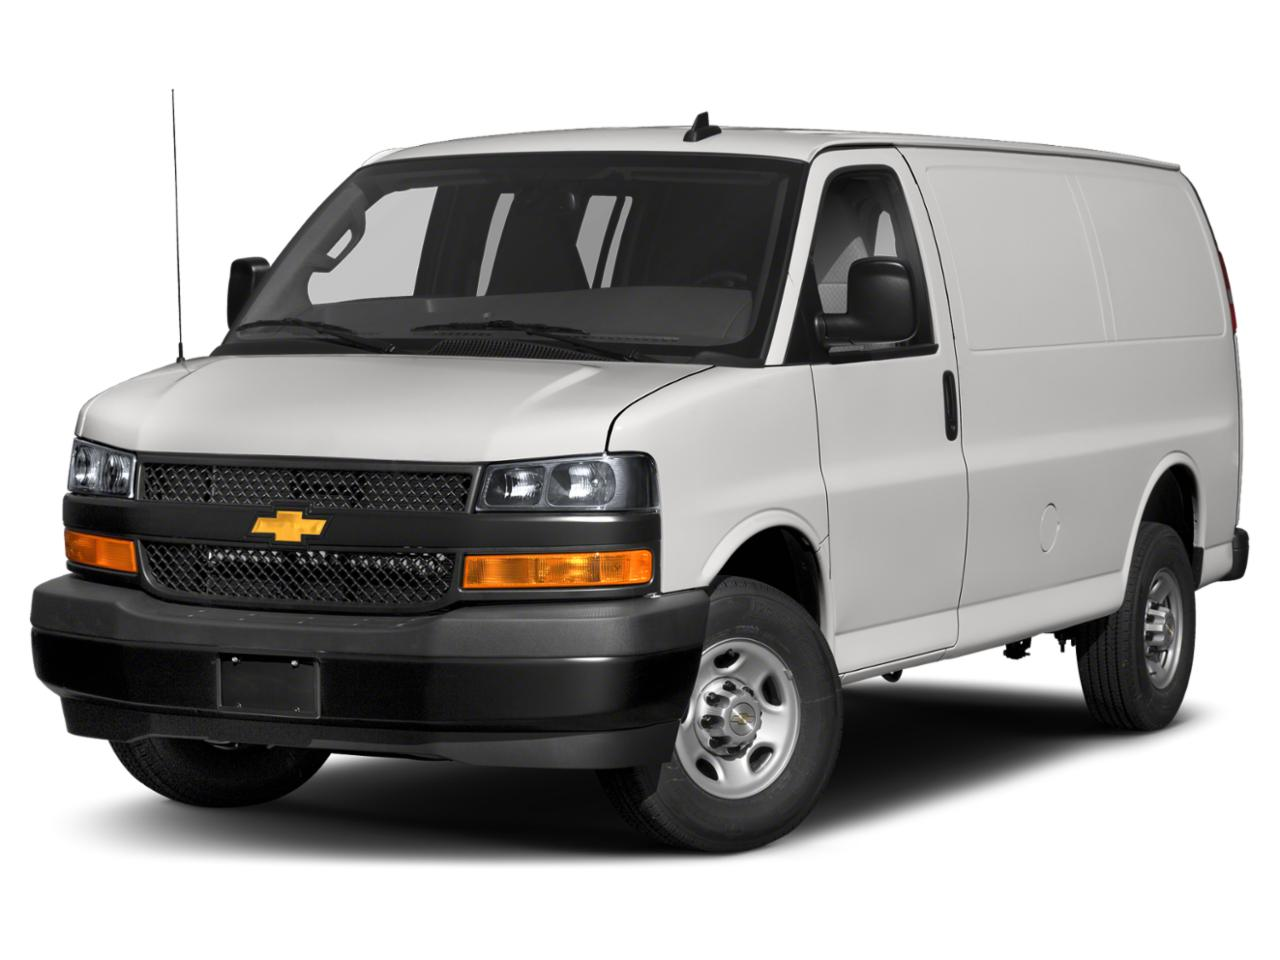 2021 Chevrolet Express Cargo Van Vehicle Photo in Appleton, WI 54914